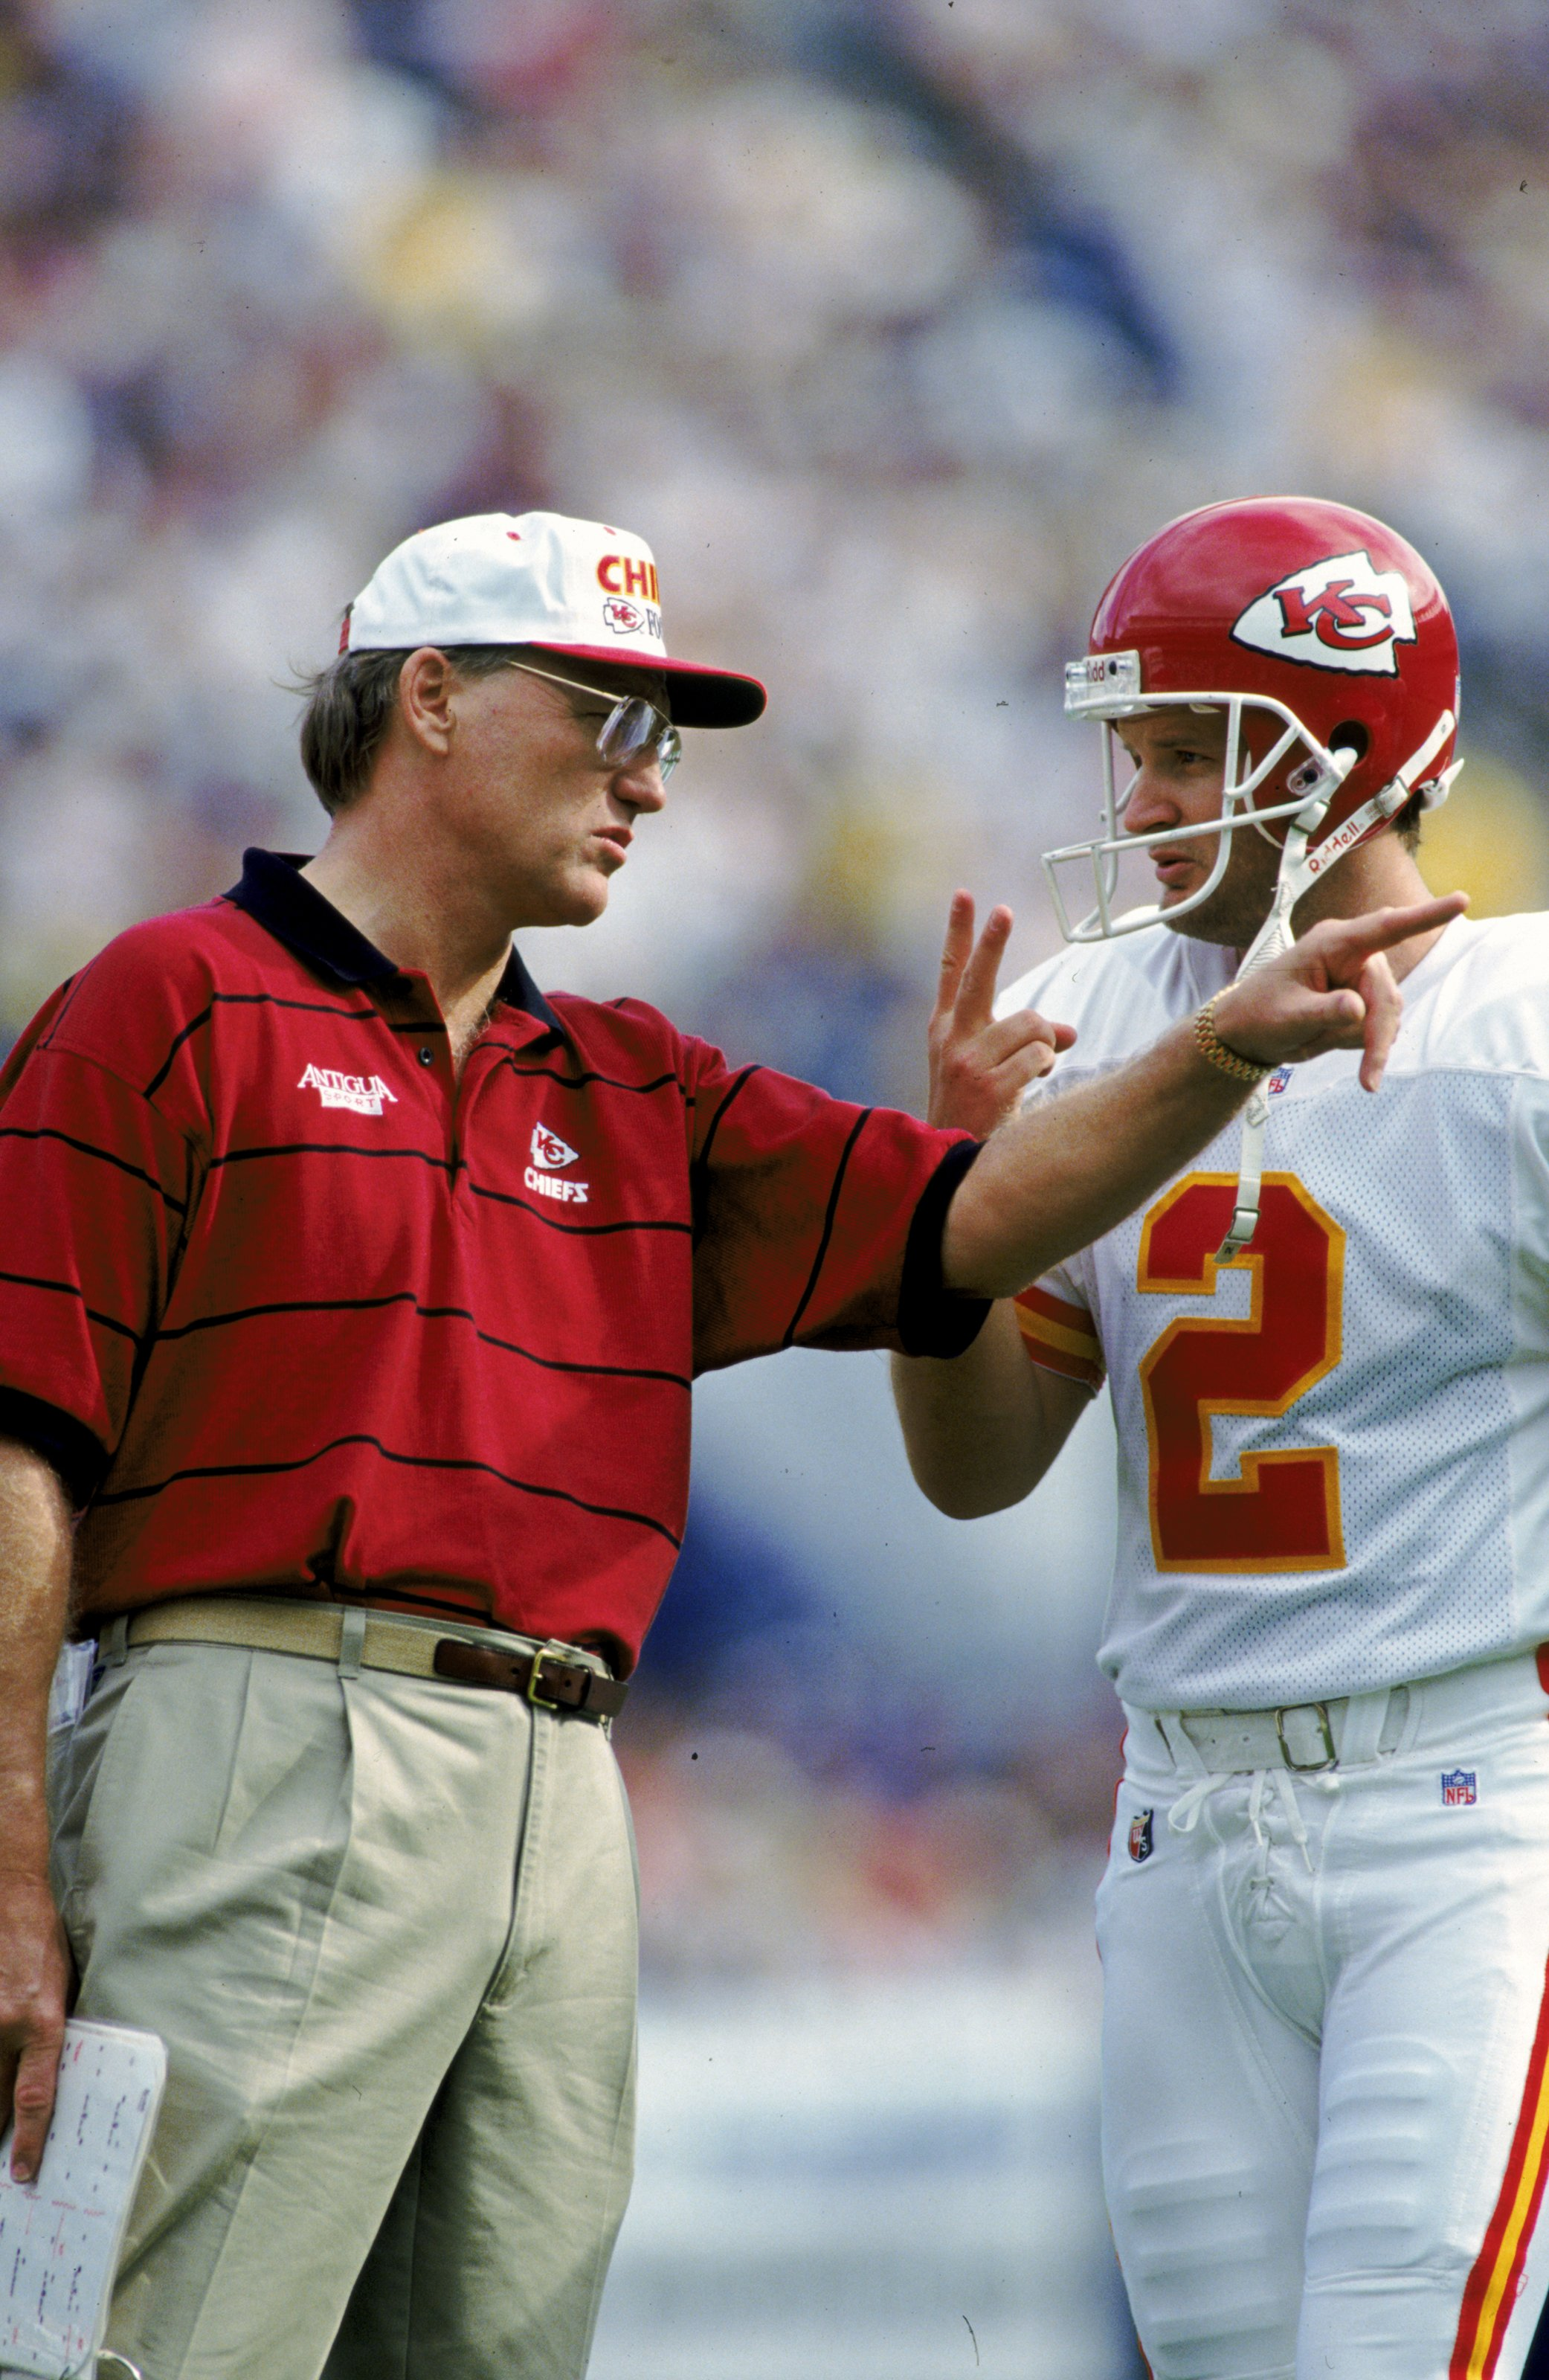 12 Nov 1995: Marty Schottenheimer #2 of the Kansas City Chiefs talks to Lin Elliot during the game against the San Diego Chargers at the Jack Murphy Sradium in San Diego, California. The Chiefs defeated the Chargers 22-7.